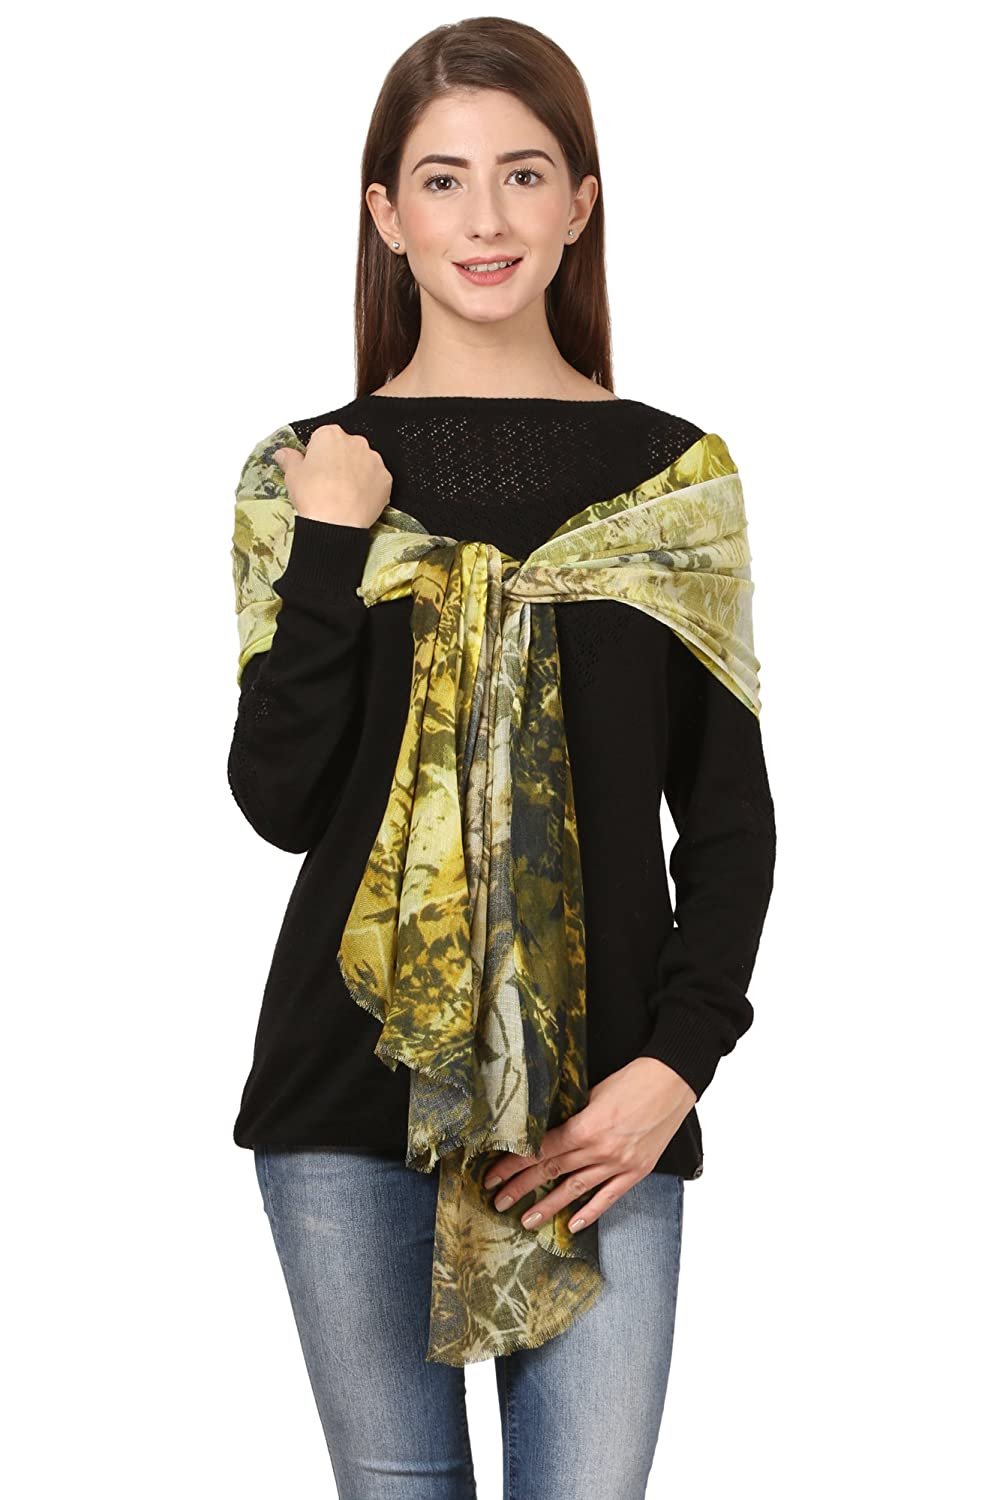 Cafsew Colours Womens Stole CG-0017-PWRM,Green,Modal Viscose